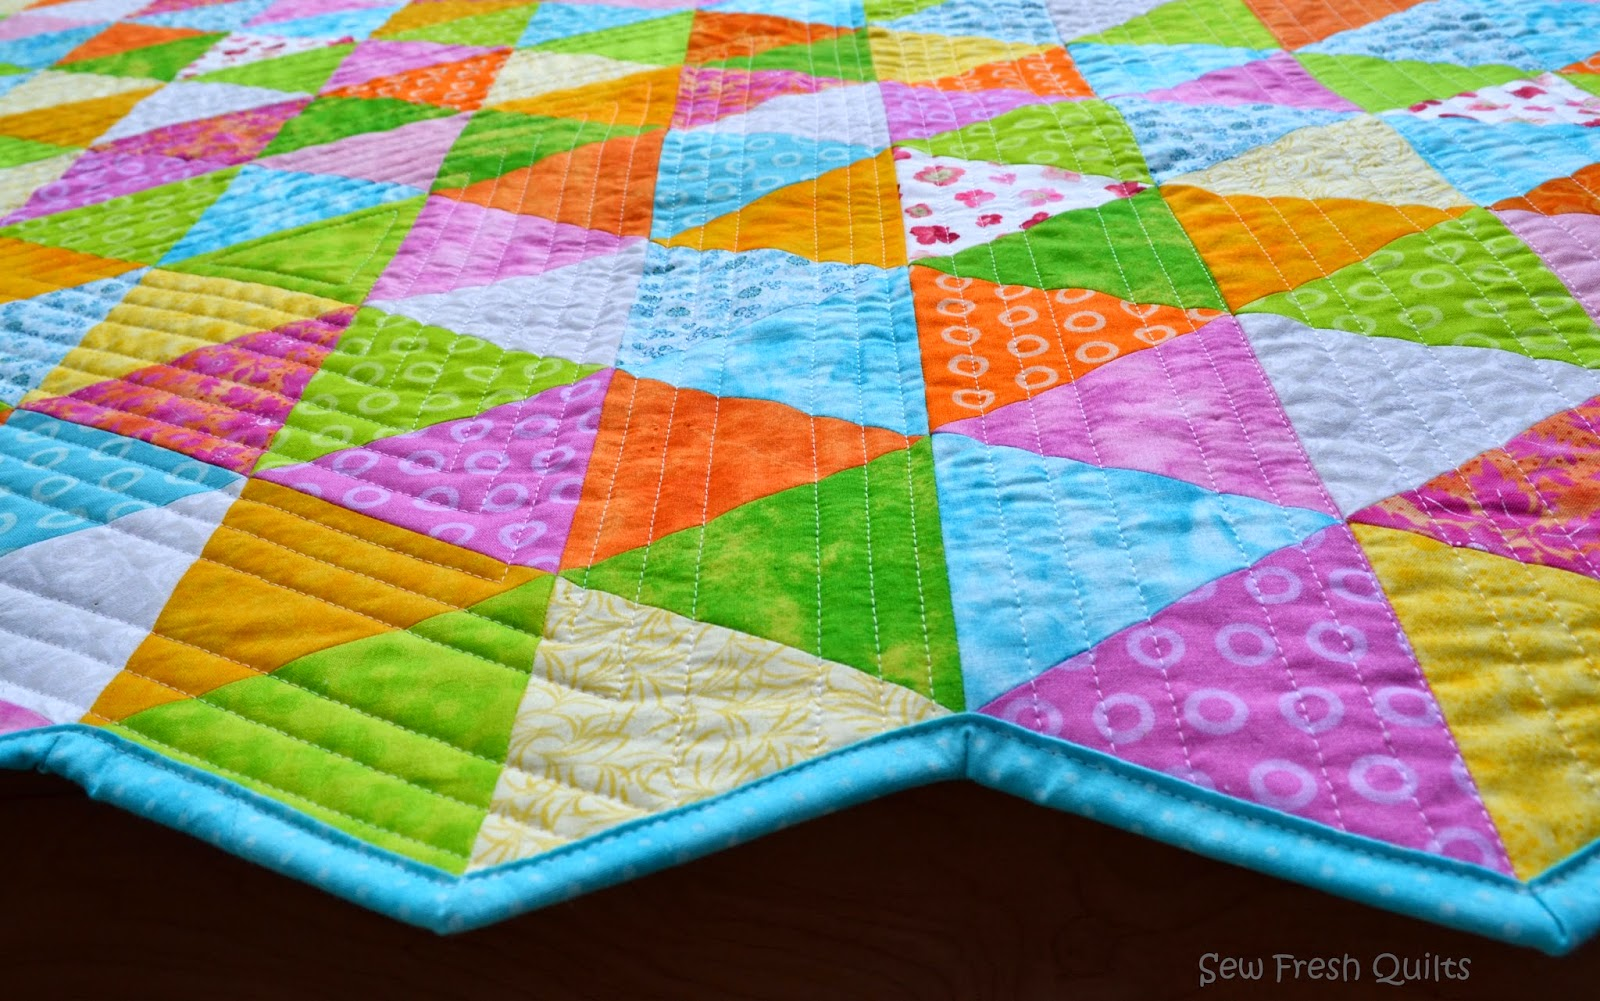 Sew Fresh Quilts: Equilateral Triangle Quilt - Finished!